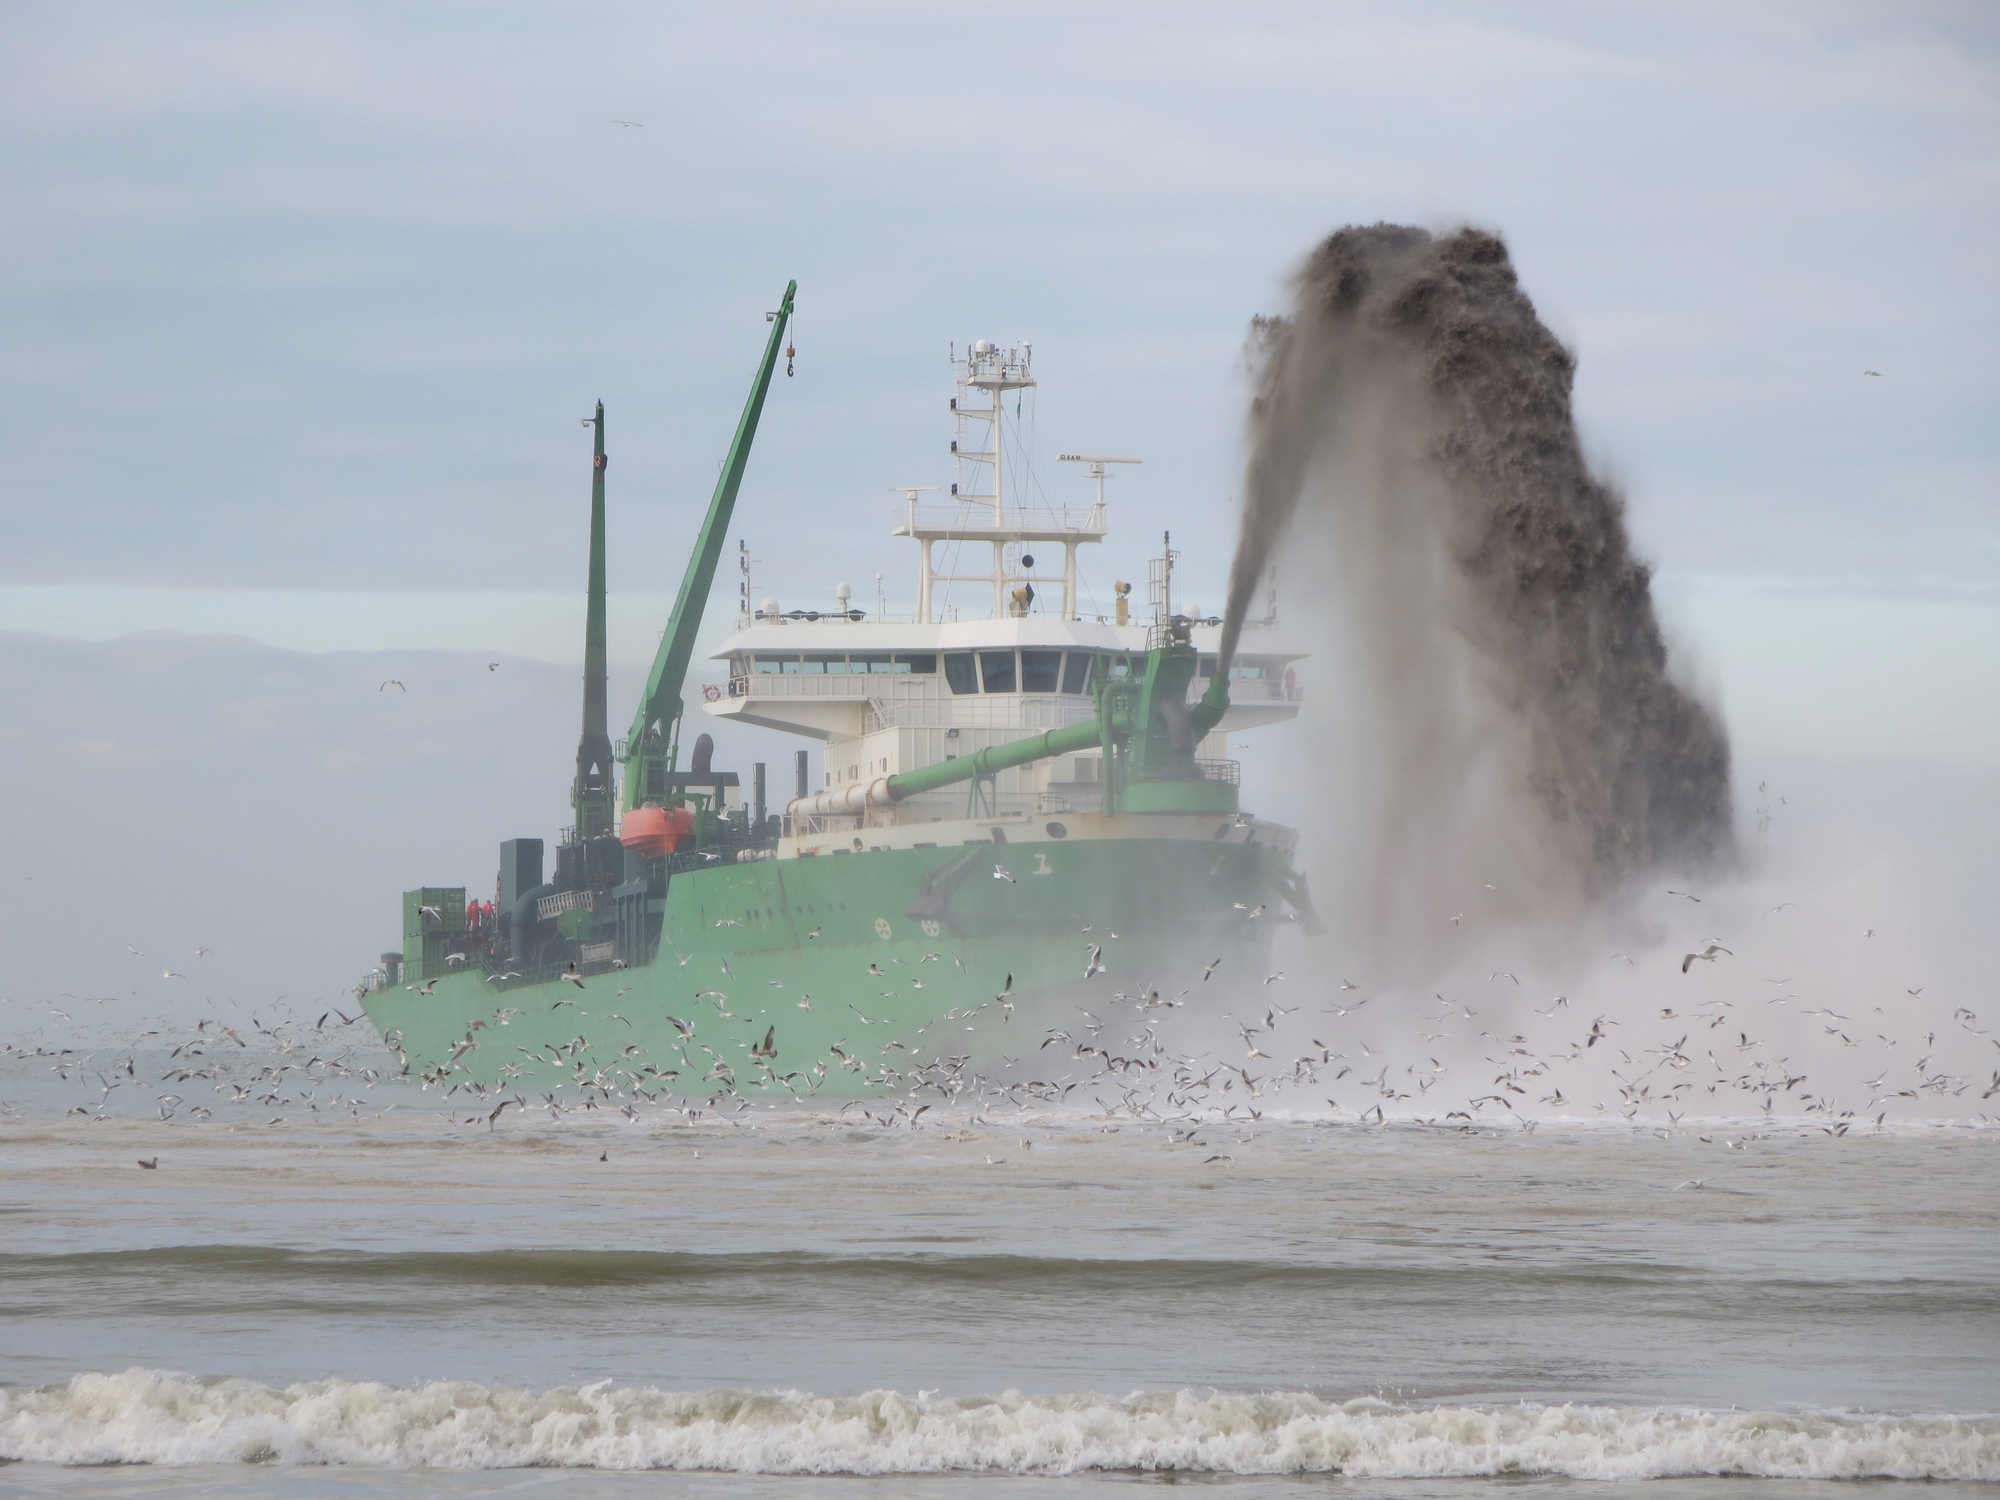 Dredger exavating material from the seabed to increase water depth